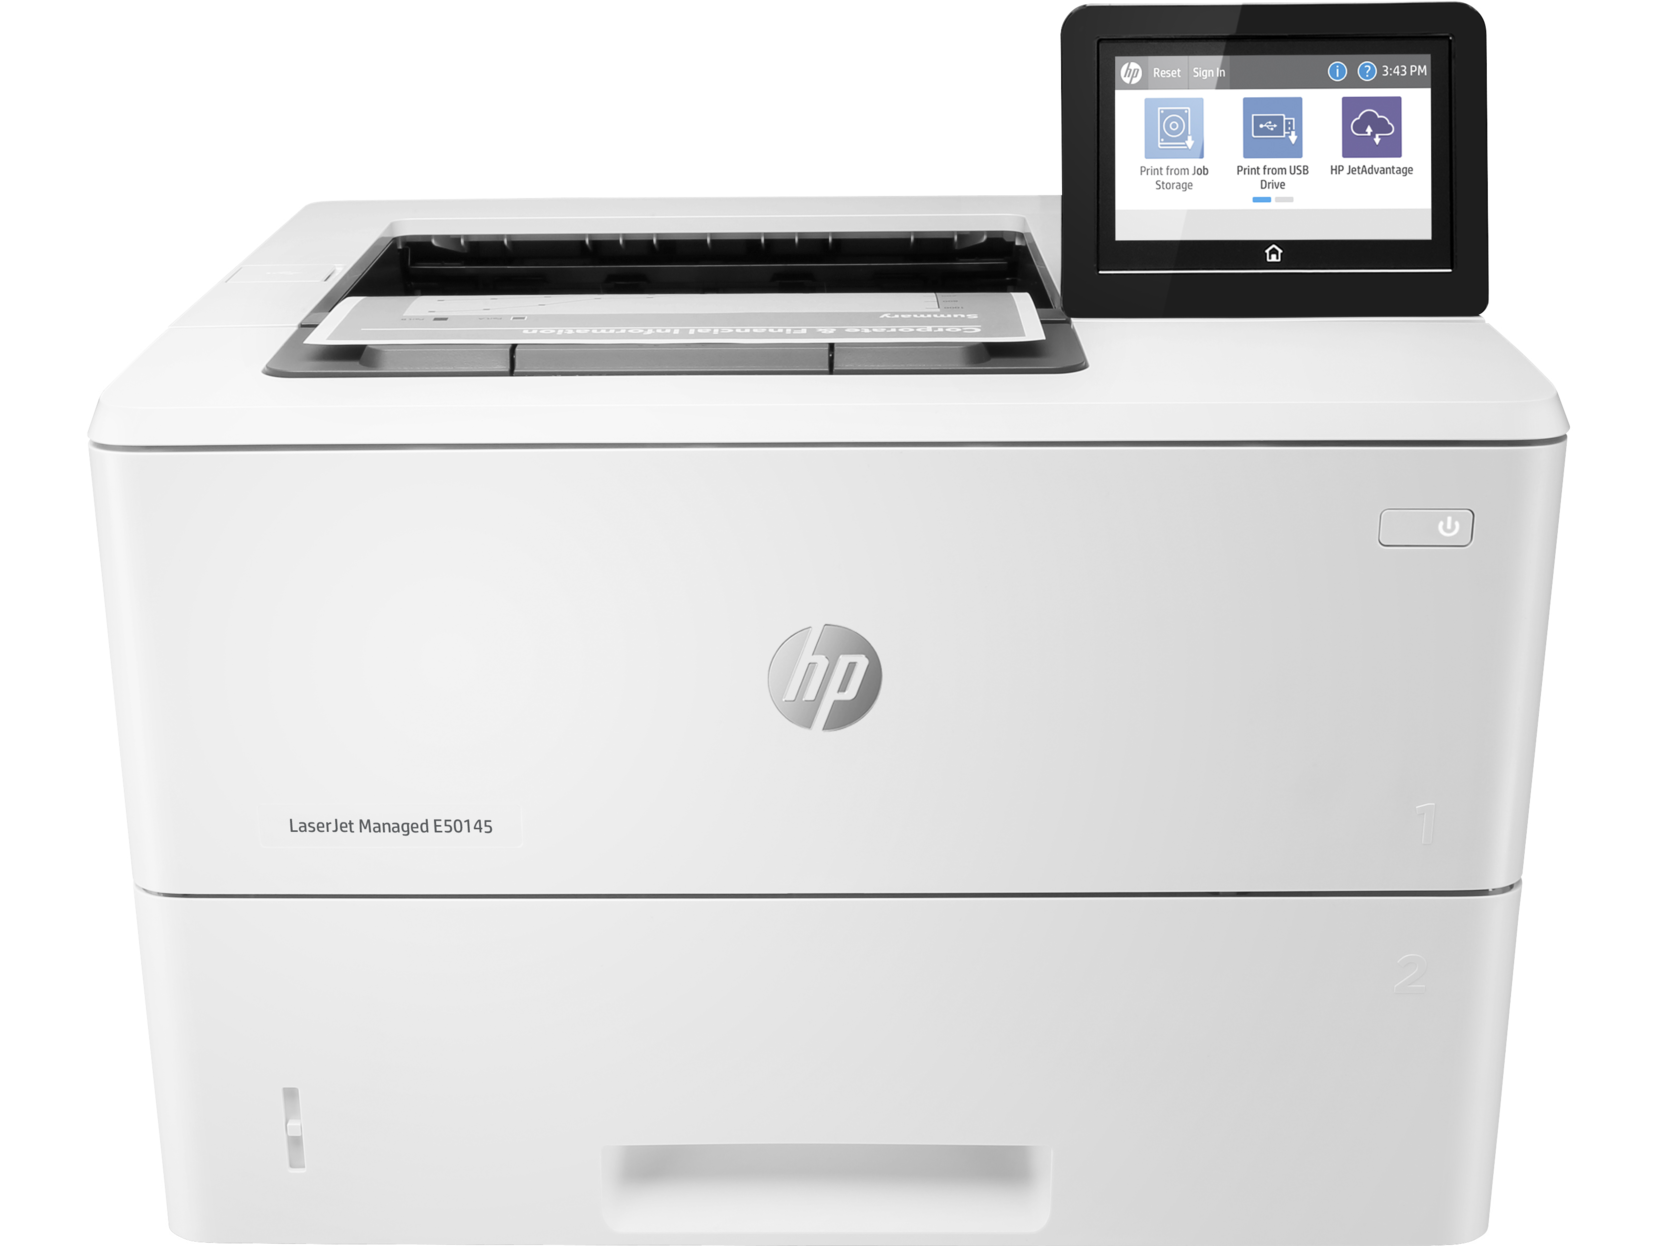 Máy in HP LaserJet Managed E50145DN Print,  Scan,  Copy,  Fax,  Duplex,  Network,  Wifi,  Email